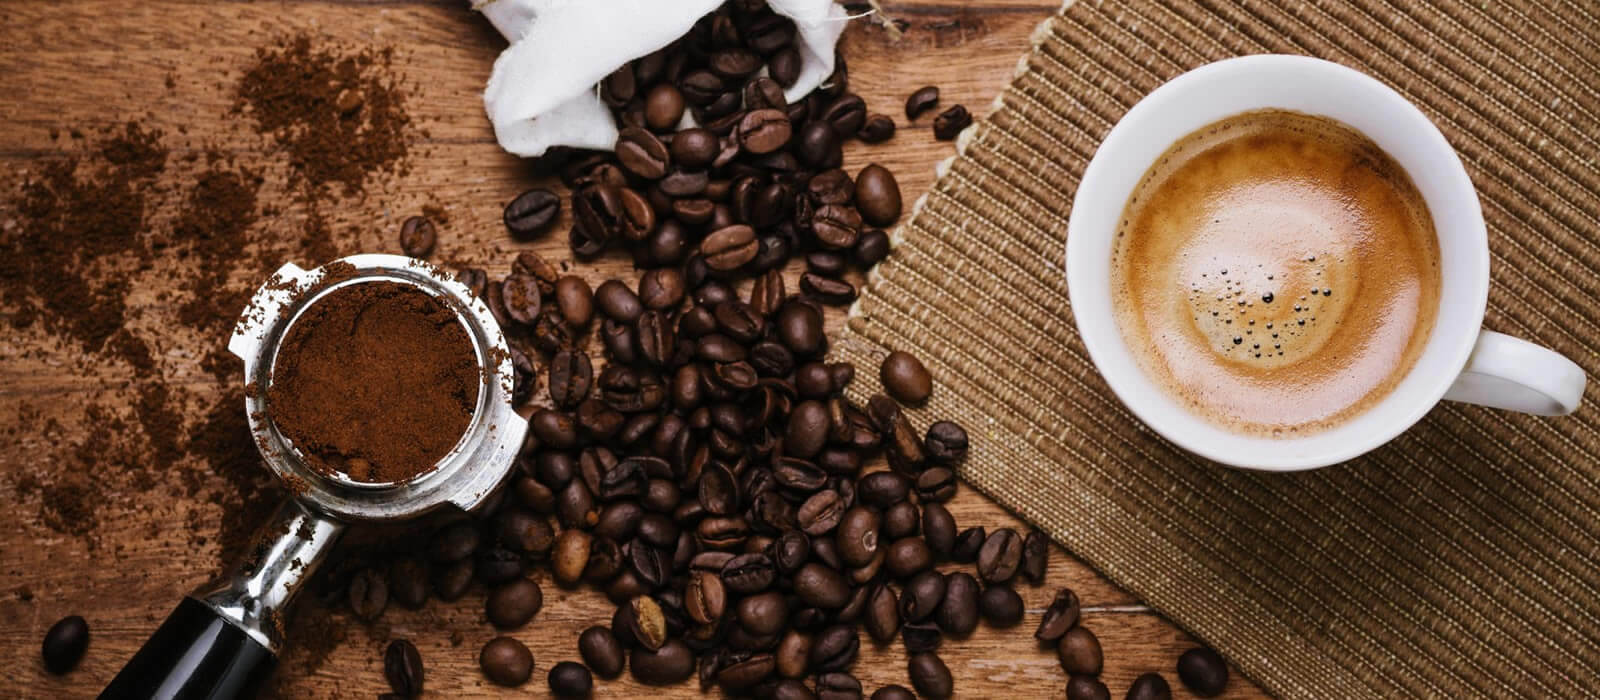 Africana Entrepreneur - The coffee revolution in Lagos